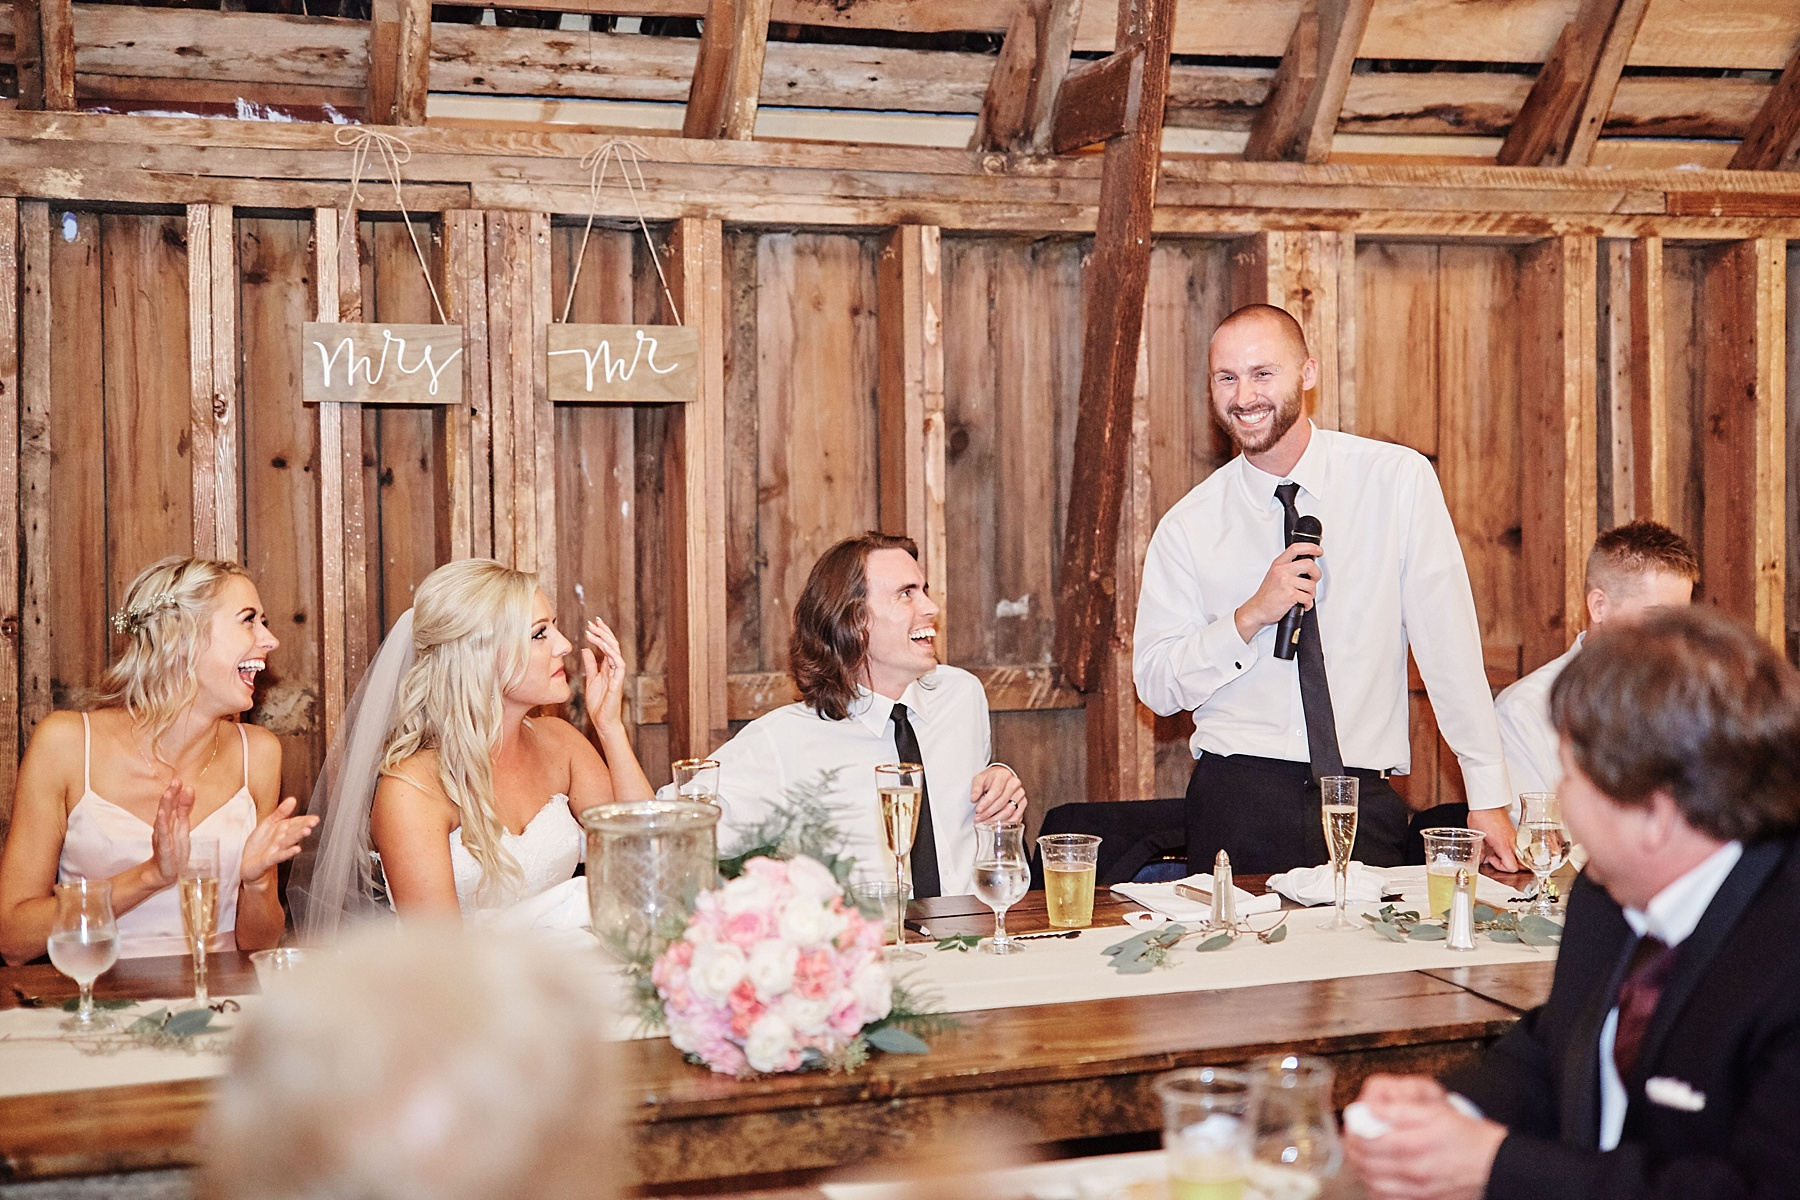 Bloom-Lake-Barn-Wedding-Schafer-Minnesota-Outdoor_0328.jpg